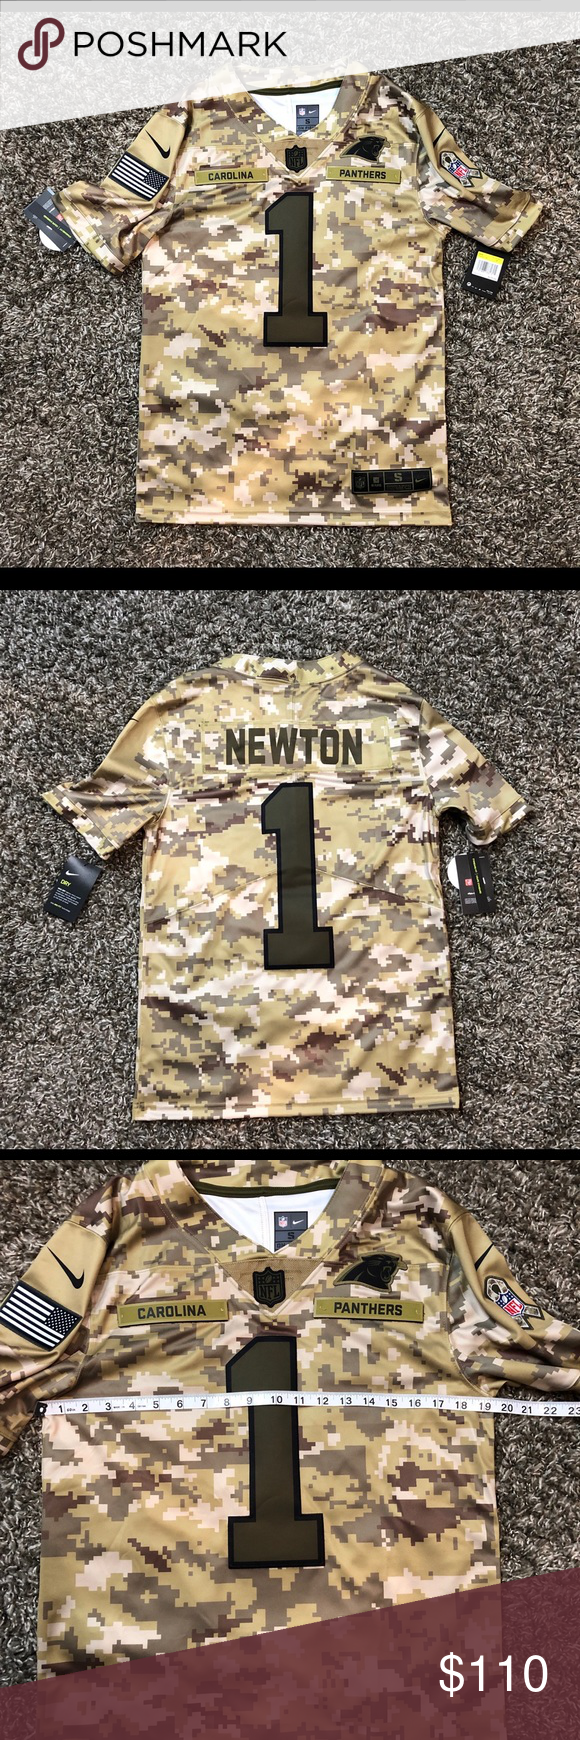 separation shoes de1c2 22513 Nike Panthers Cam Newton Salute to Service Jersey Nike ...